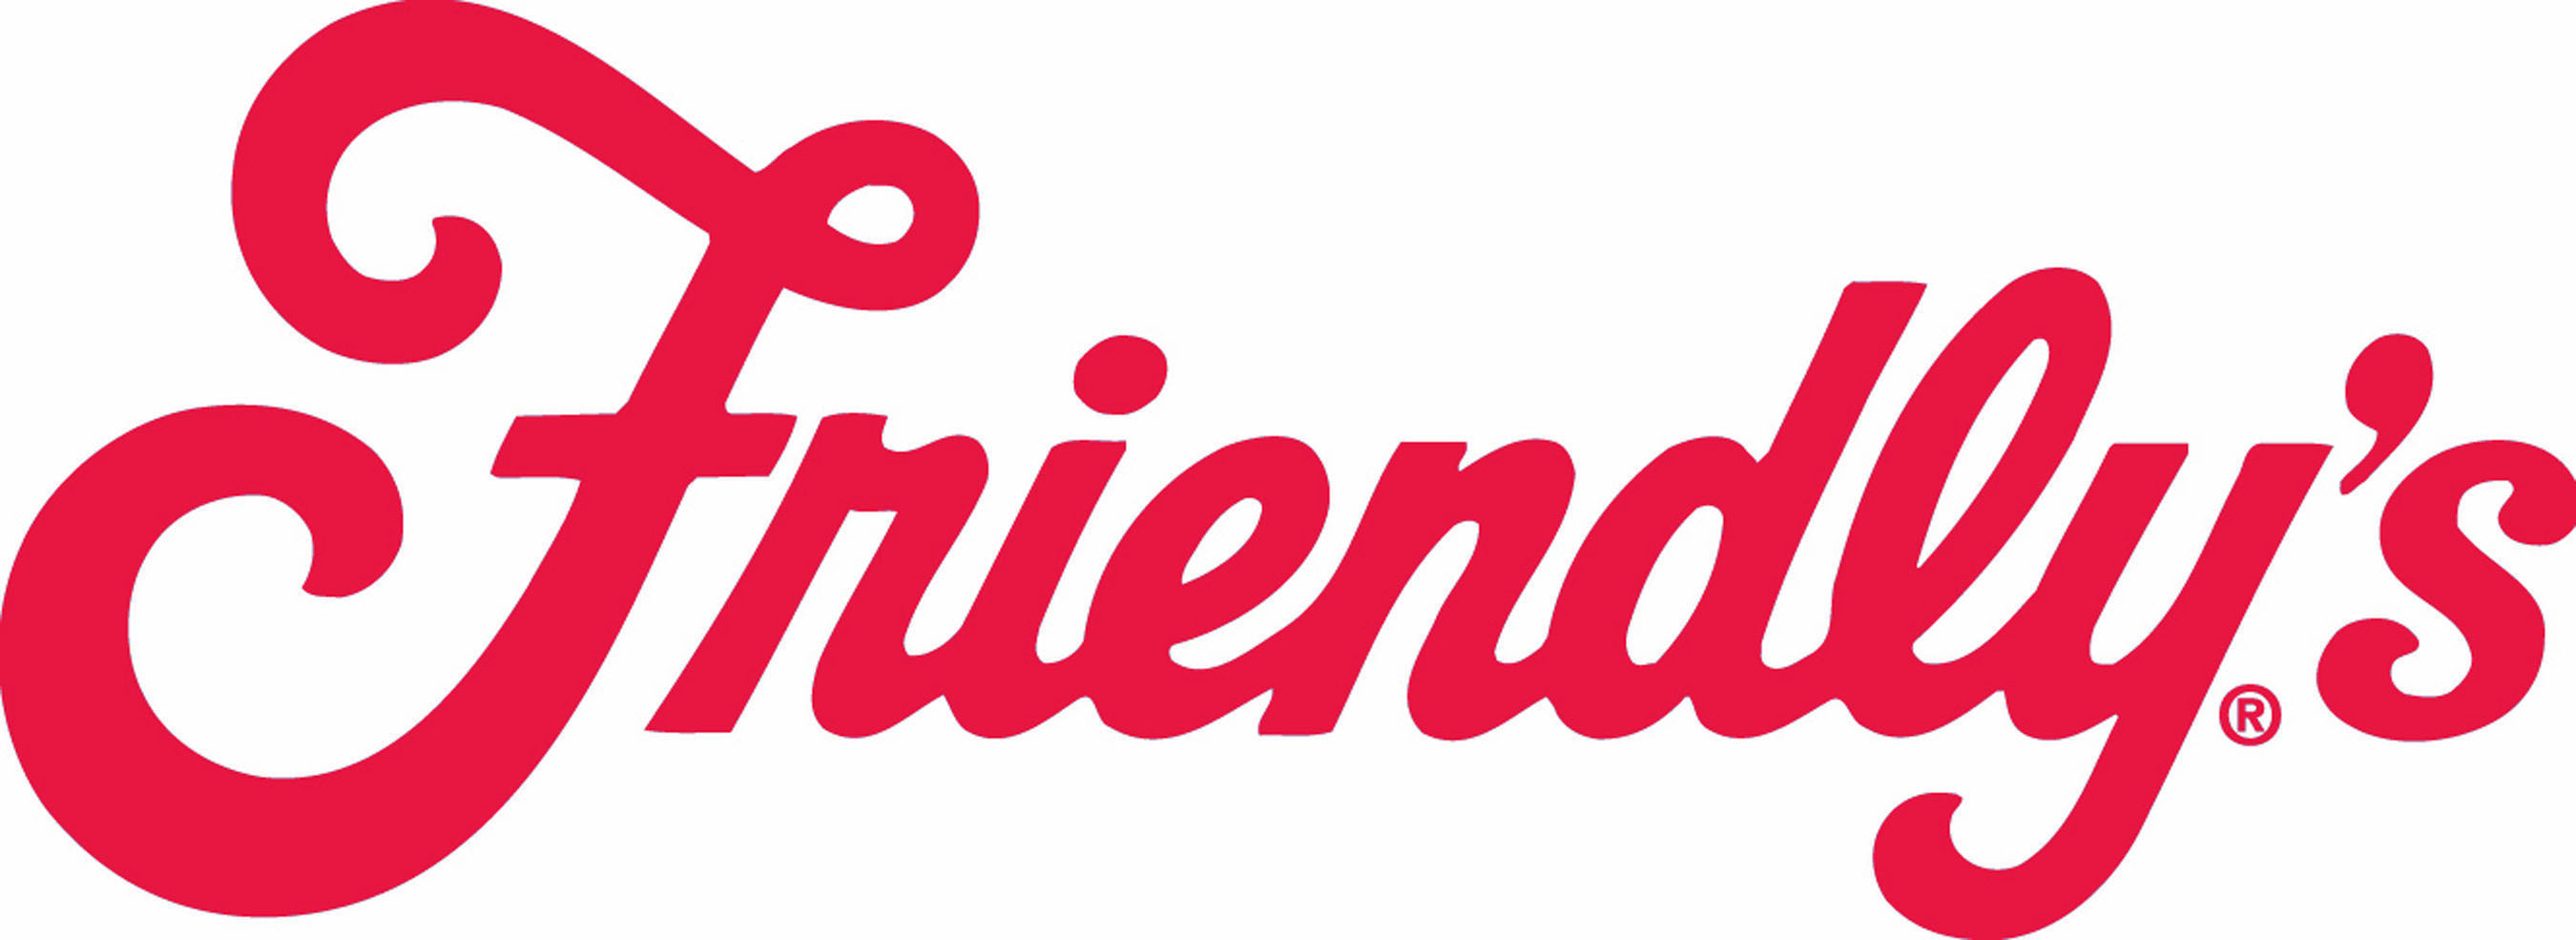 Official Logo for Friendly's Ice Cream LLC.